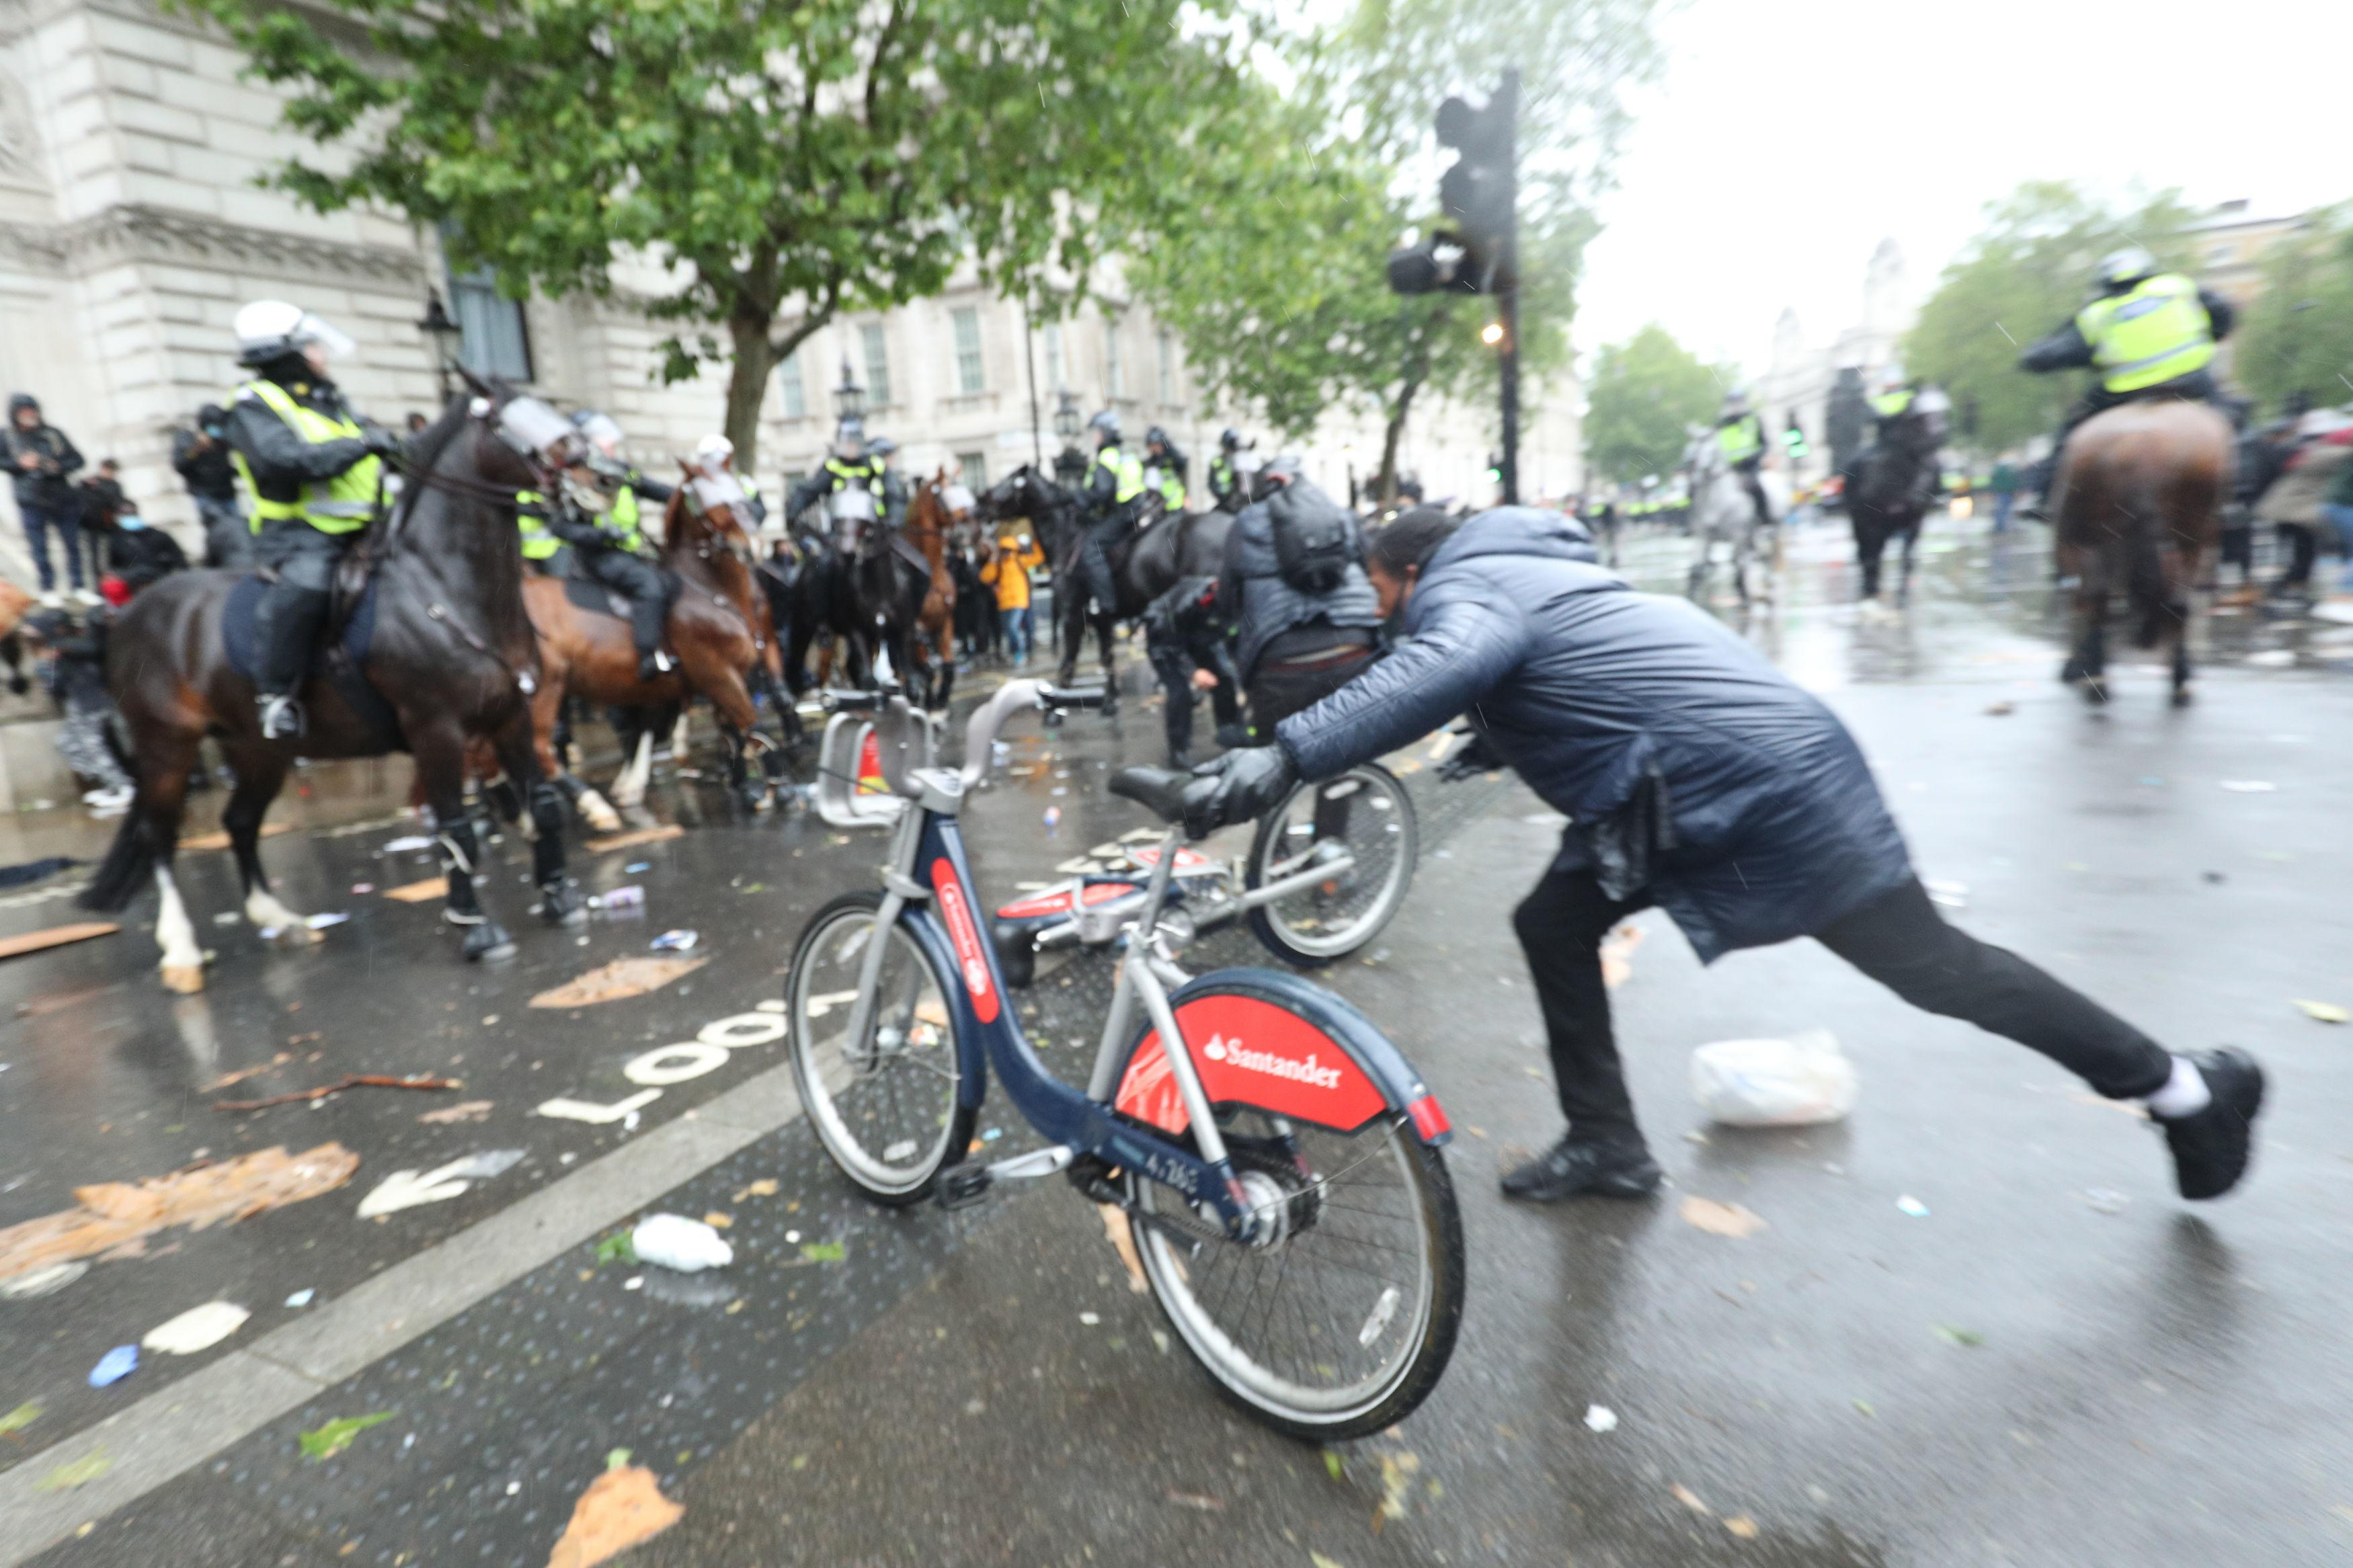 A bicycle is thrown at mounted police Police on horseback in Whitehall following a Black Lives Matter protest rally in Parliament Square, London, in memory of George Floyd who was killed on May 25 while in police custody in the US city of Minneapolis. PA Photo. Picture date: Saturday June 6, 2020. See PA story POLICE Floyd. Photo credit should read: Yui Mok/PA Wire